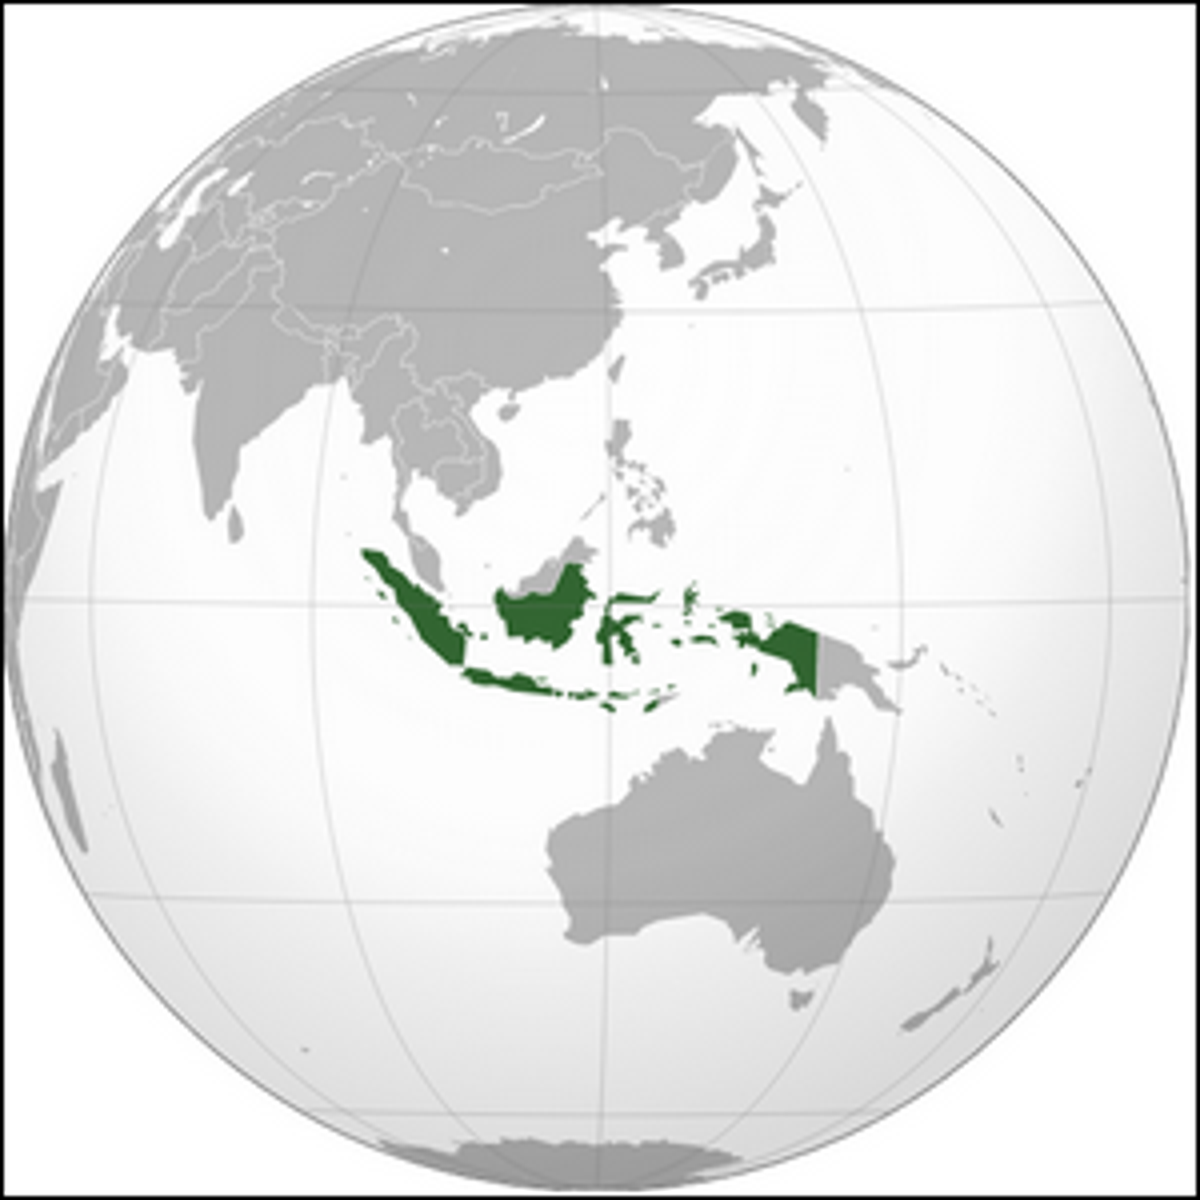 An orthographic projection map of Indonesia.